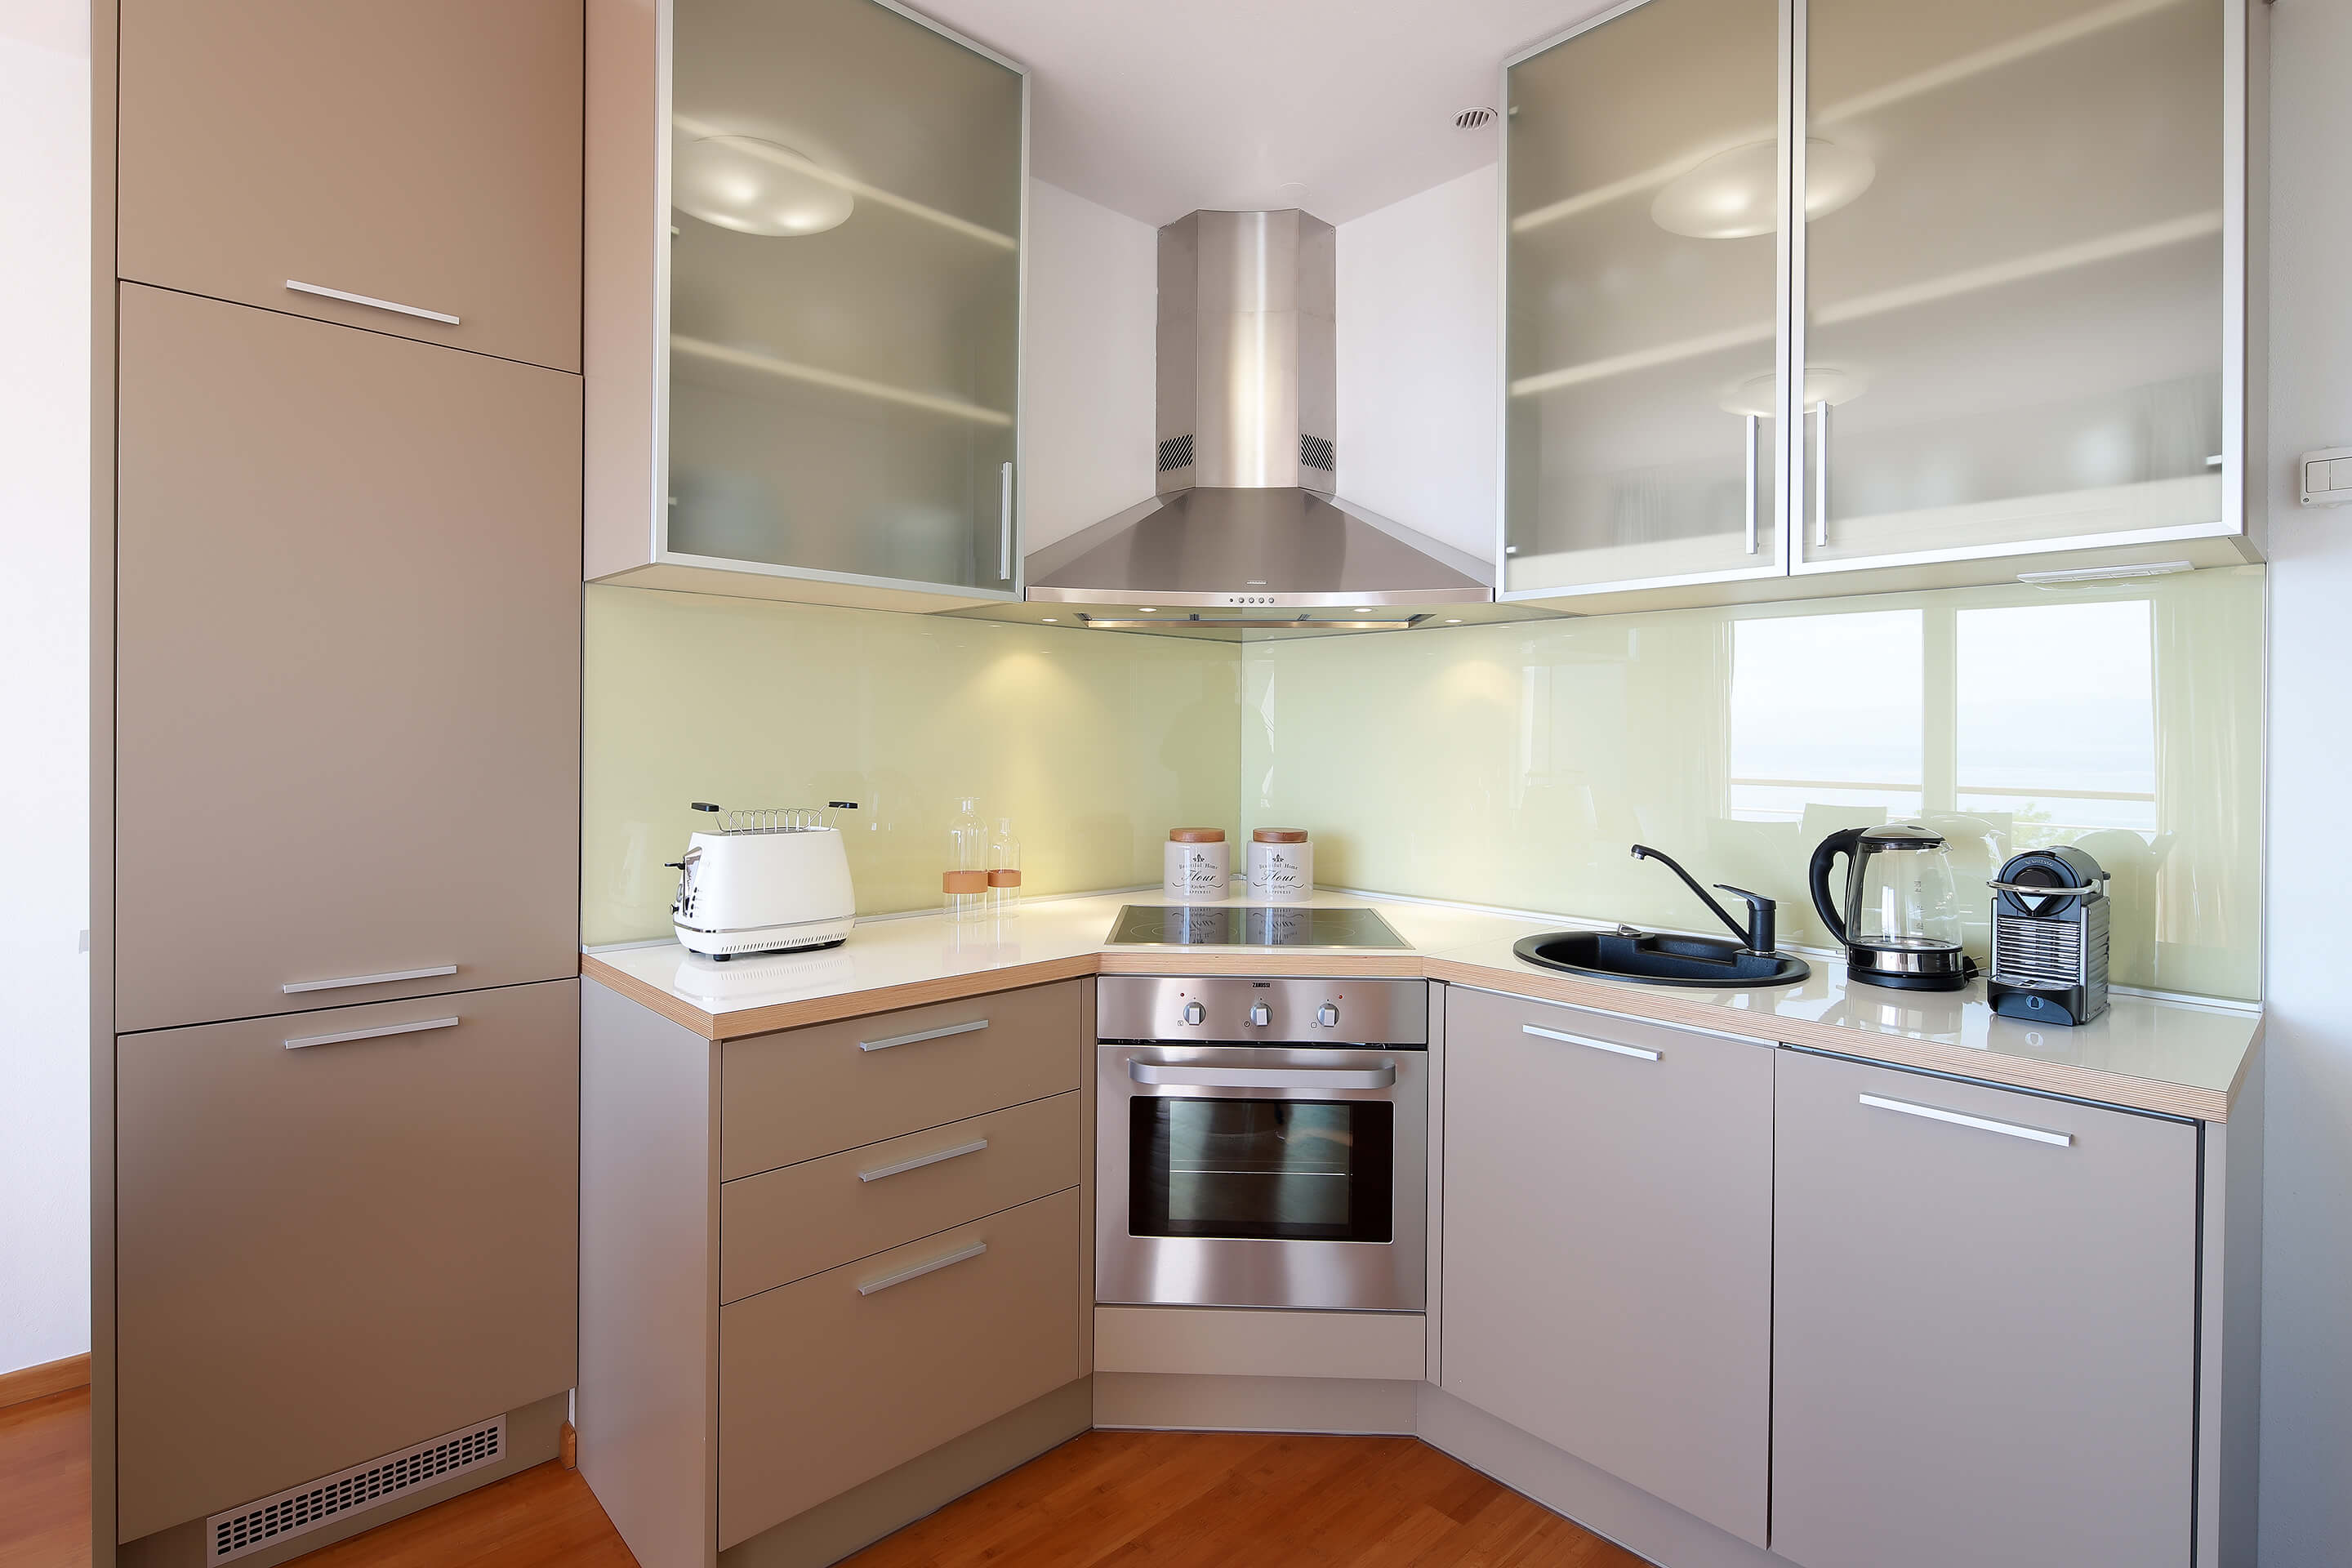 A4 kitchen - dining area - electric kettle - toaster - coffee machine - decoration details